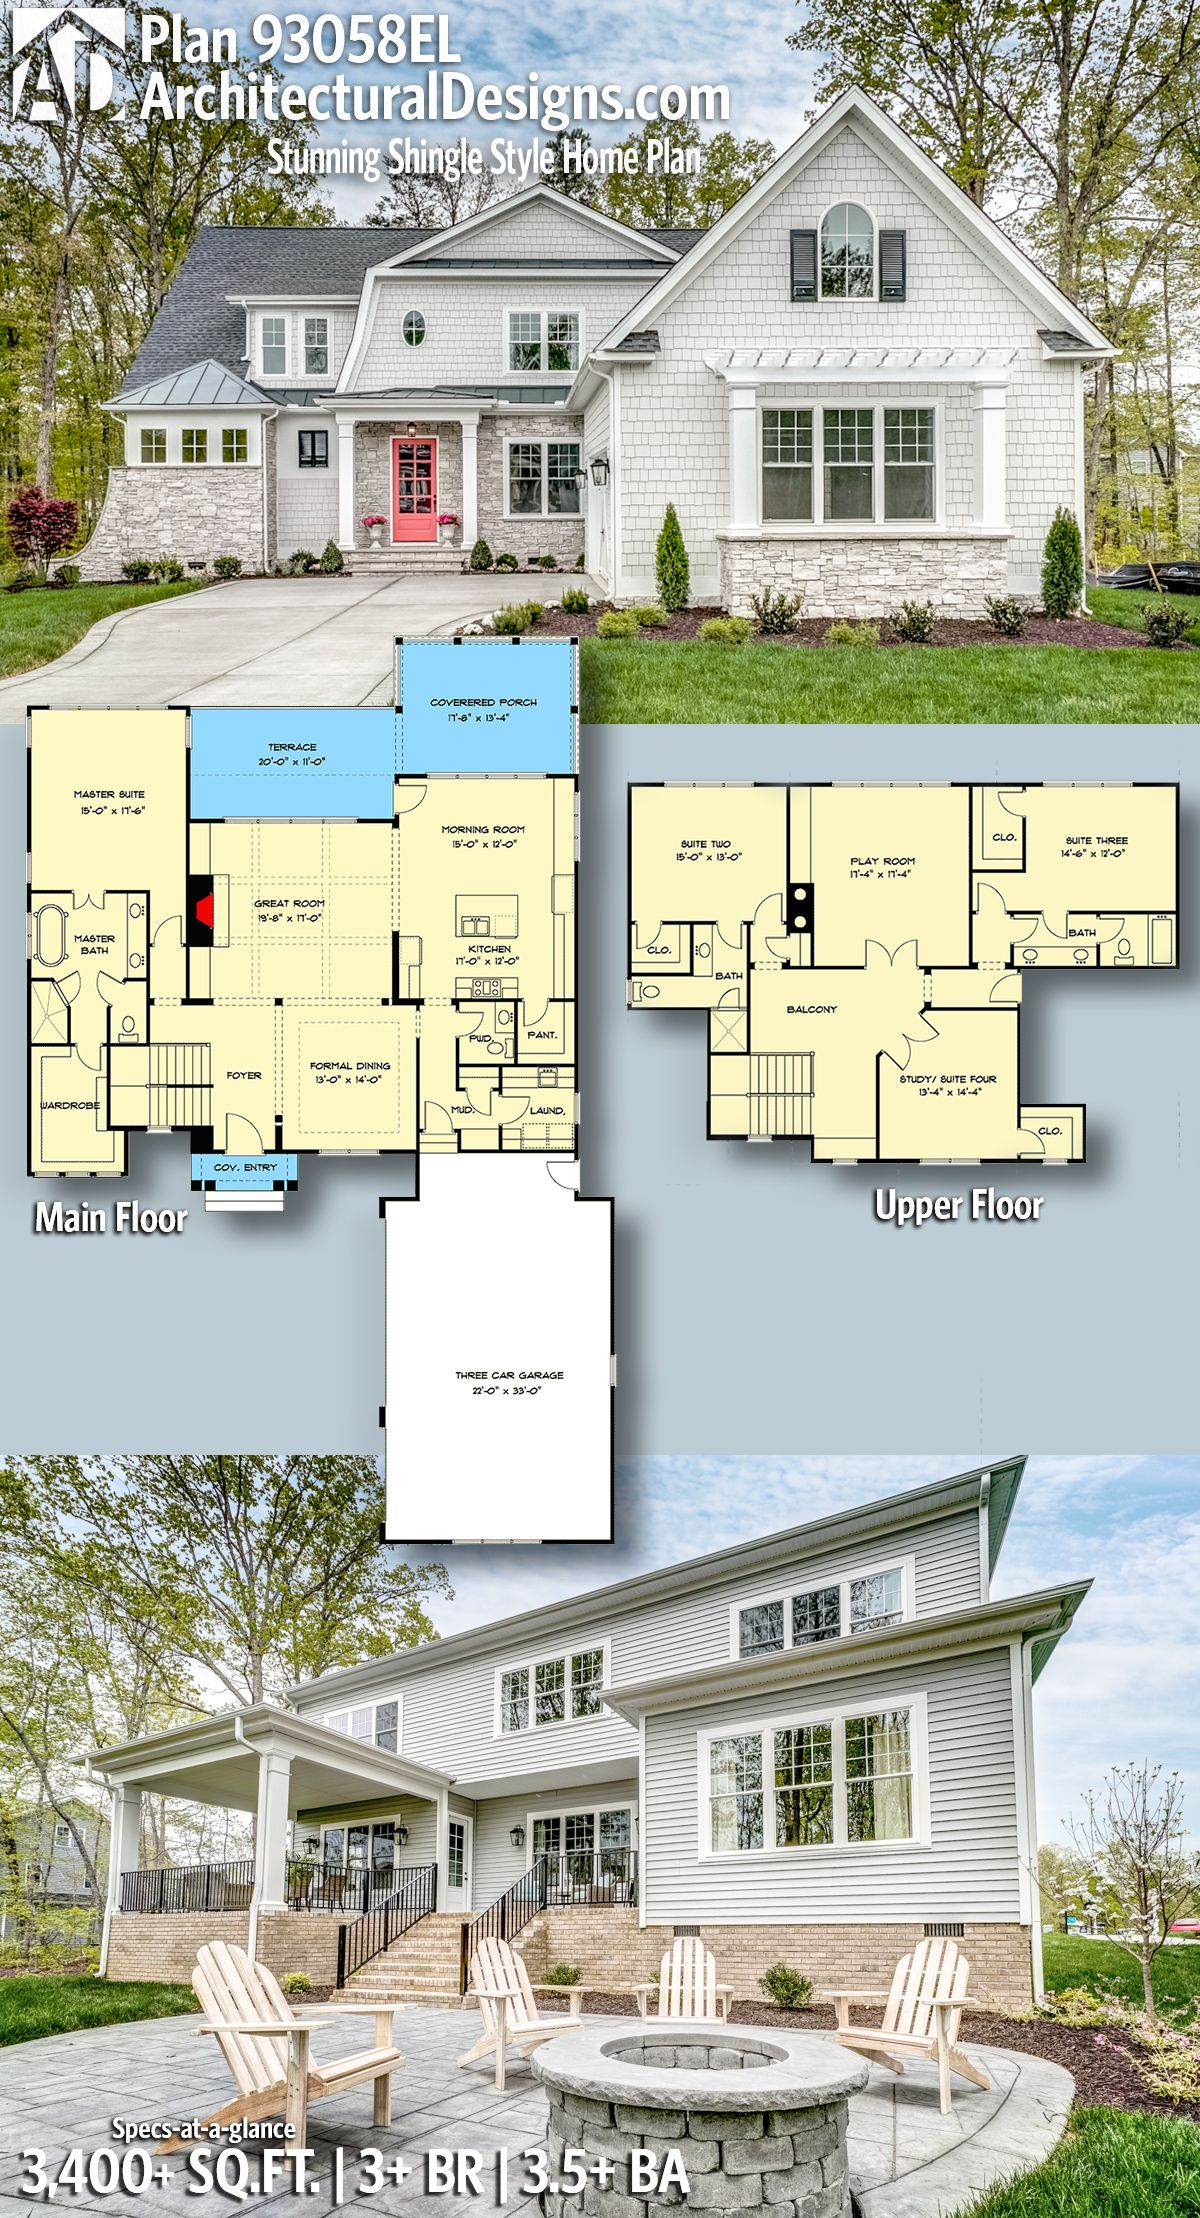 Architectural Designs House Plan 93058EL Client Built In Virginia By Our  Friends At TimberCreek Building And Design! | 3+ BR | 3.5+ BA | 3,400+ Sq.  Ft.